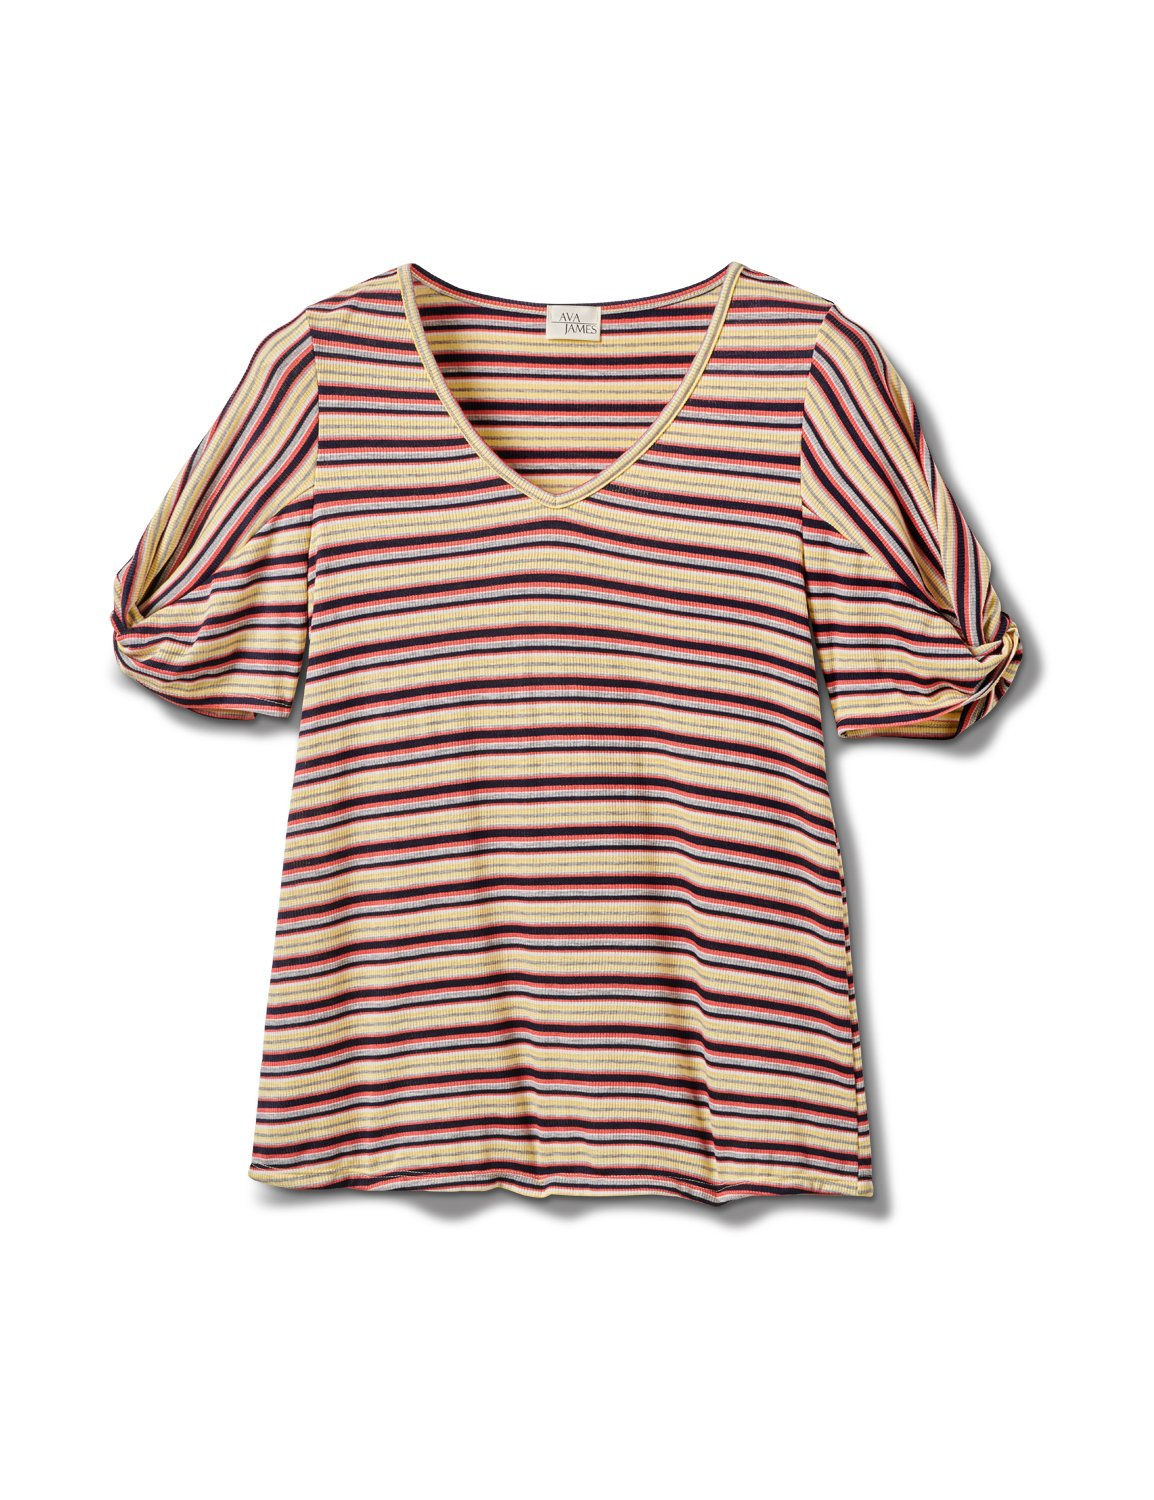 Rib Stripe Thermal Tee - Misses -Banana - Front